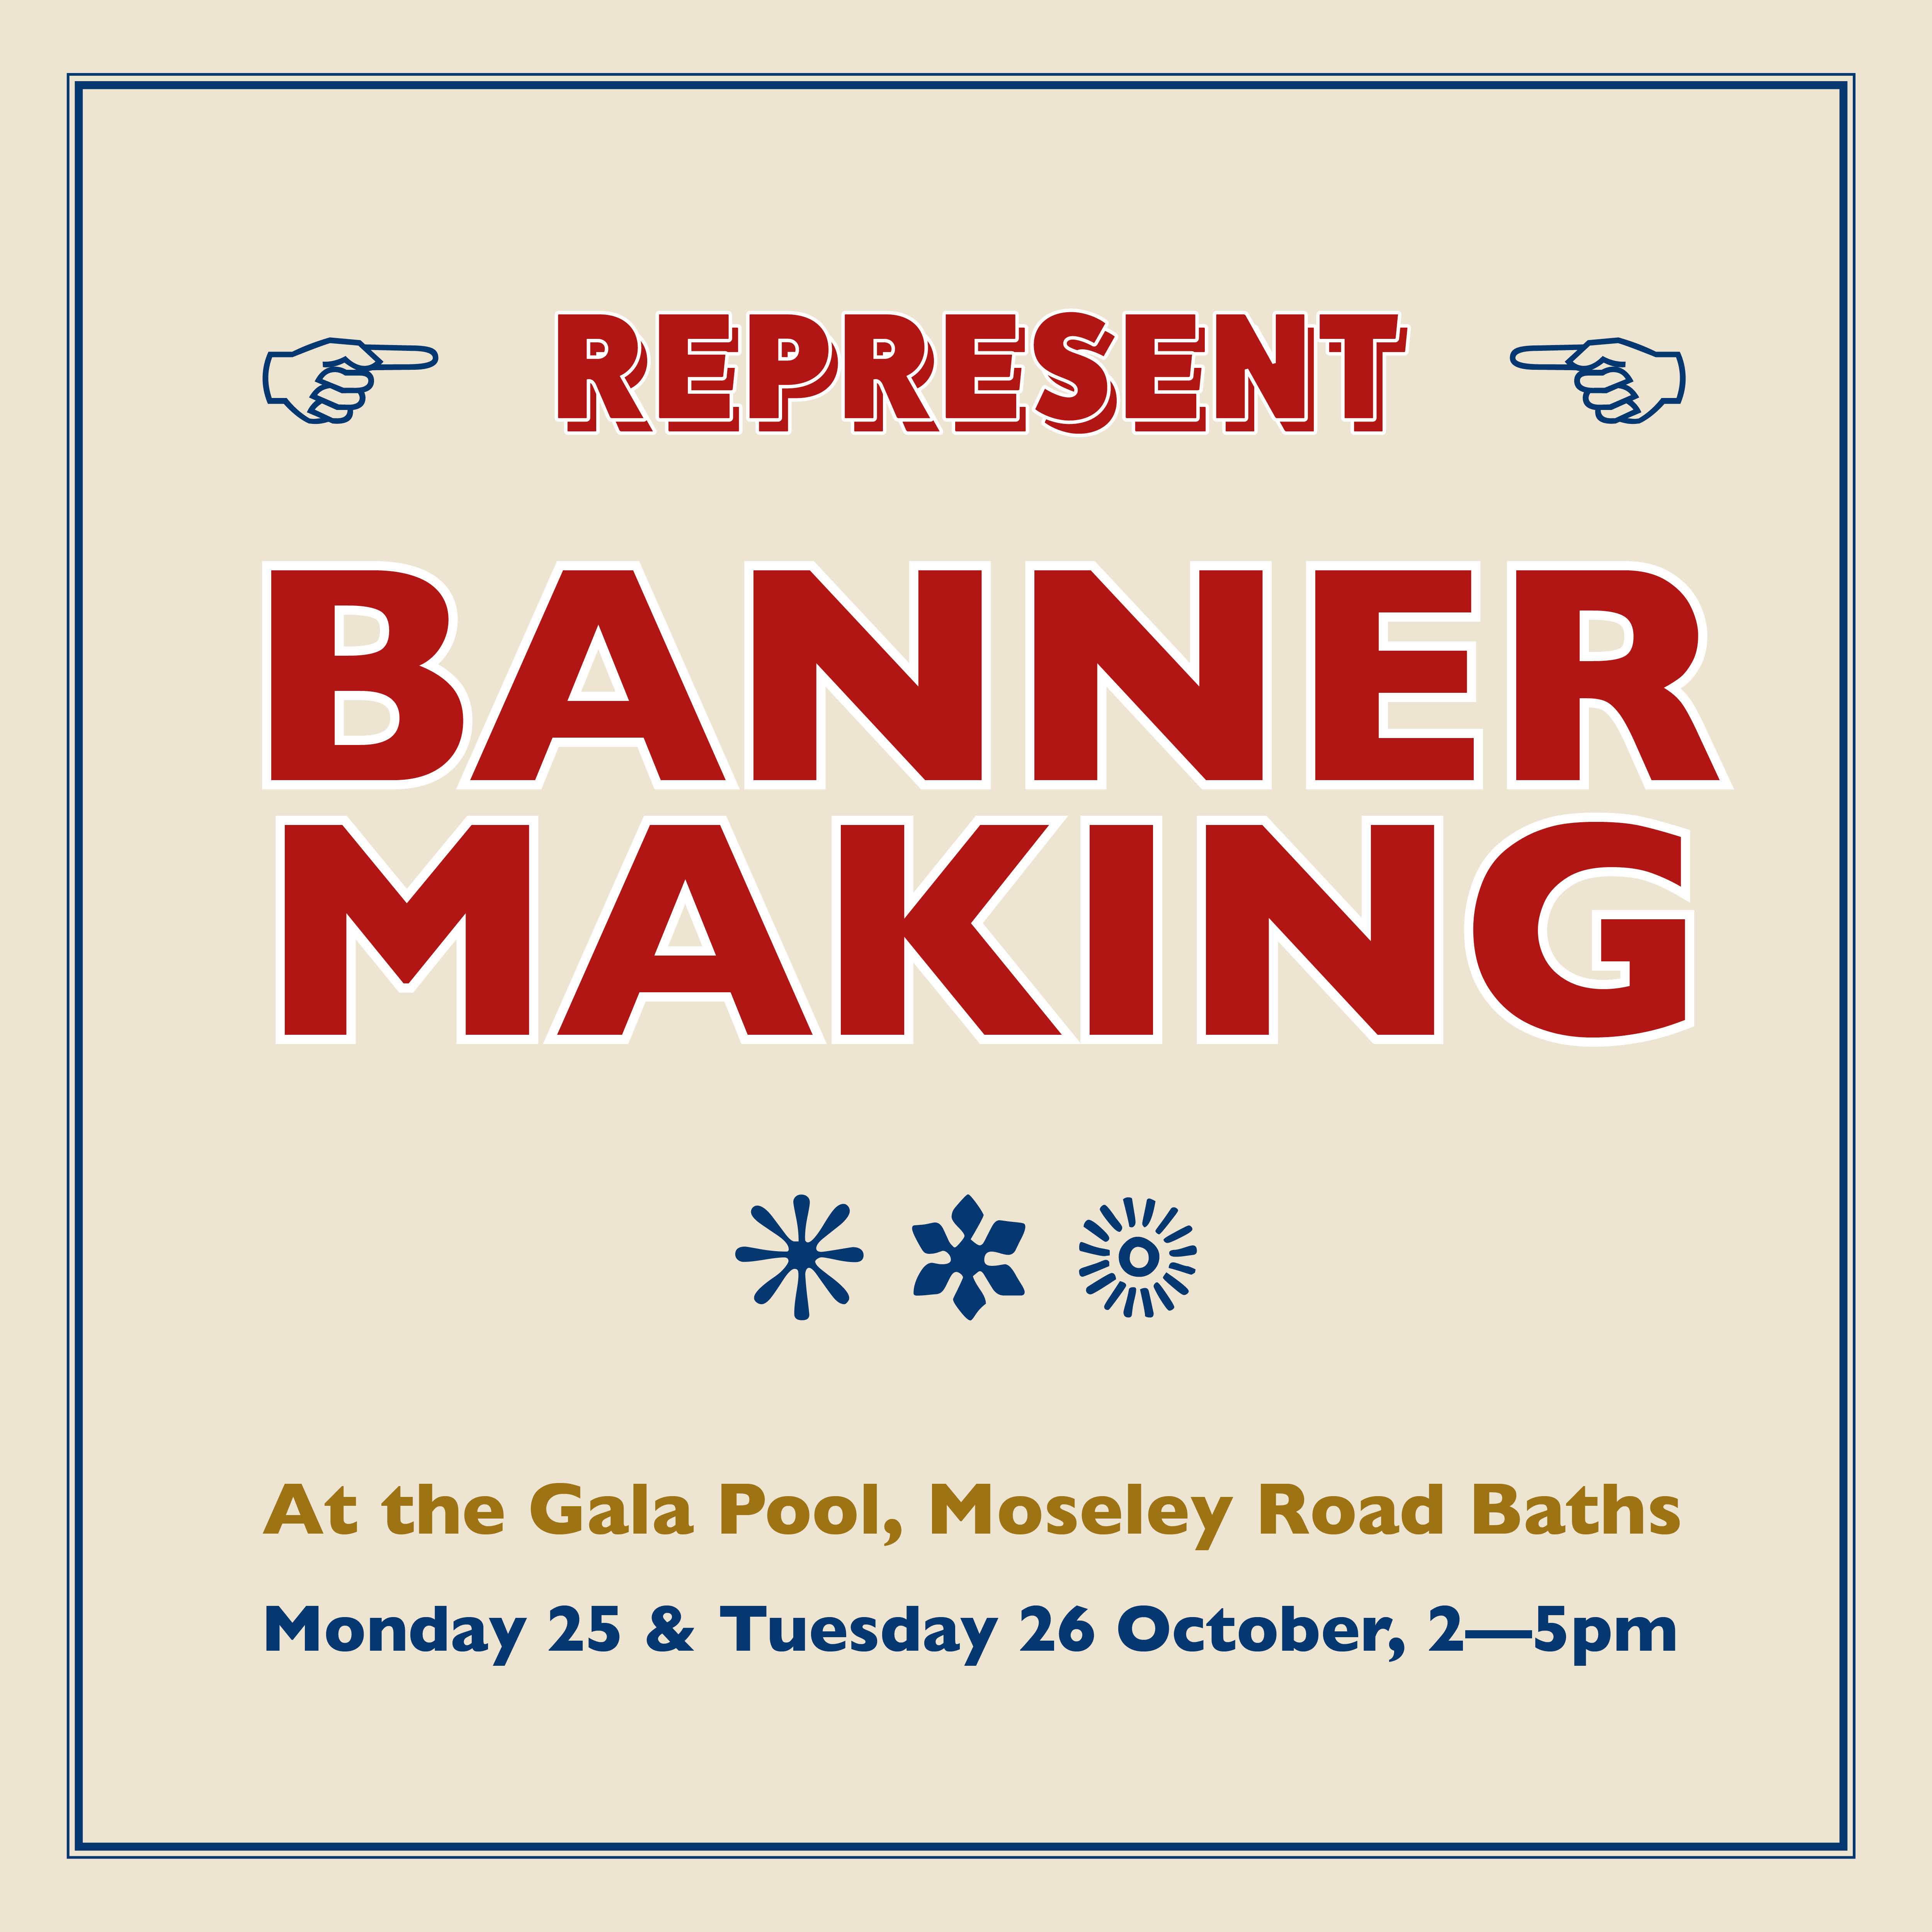 Banner Making for families at Moseley Road Baths